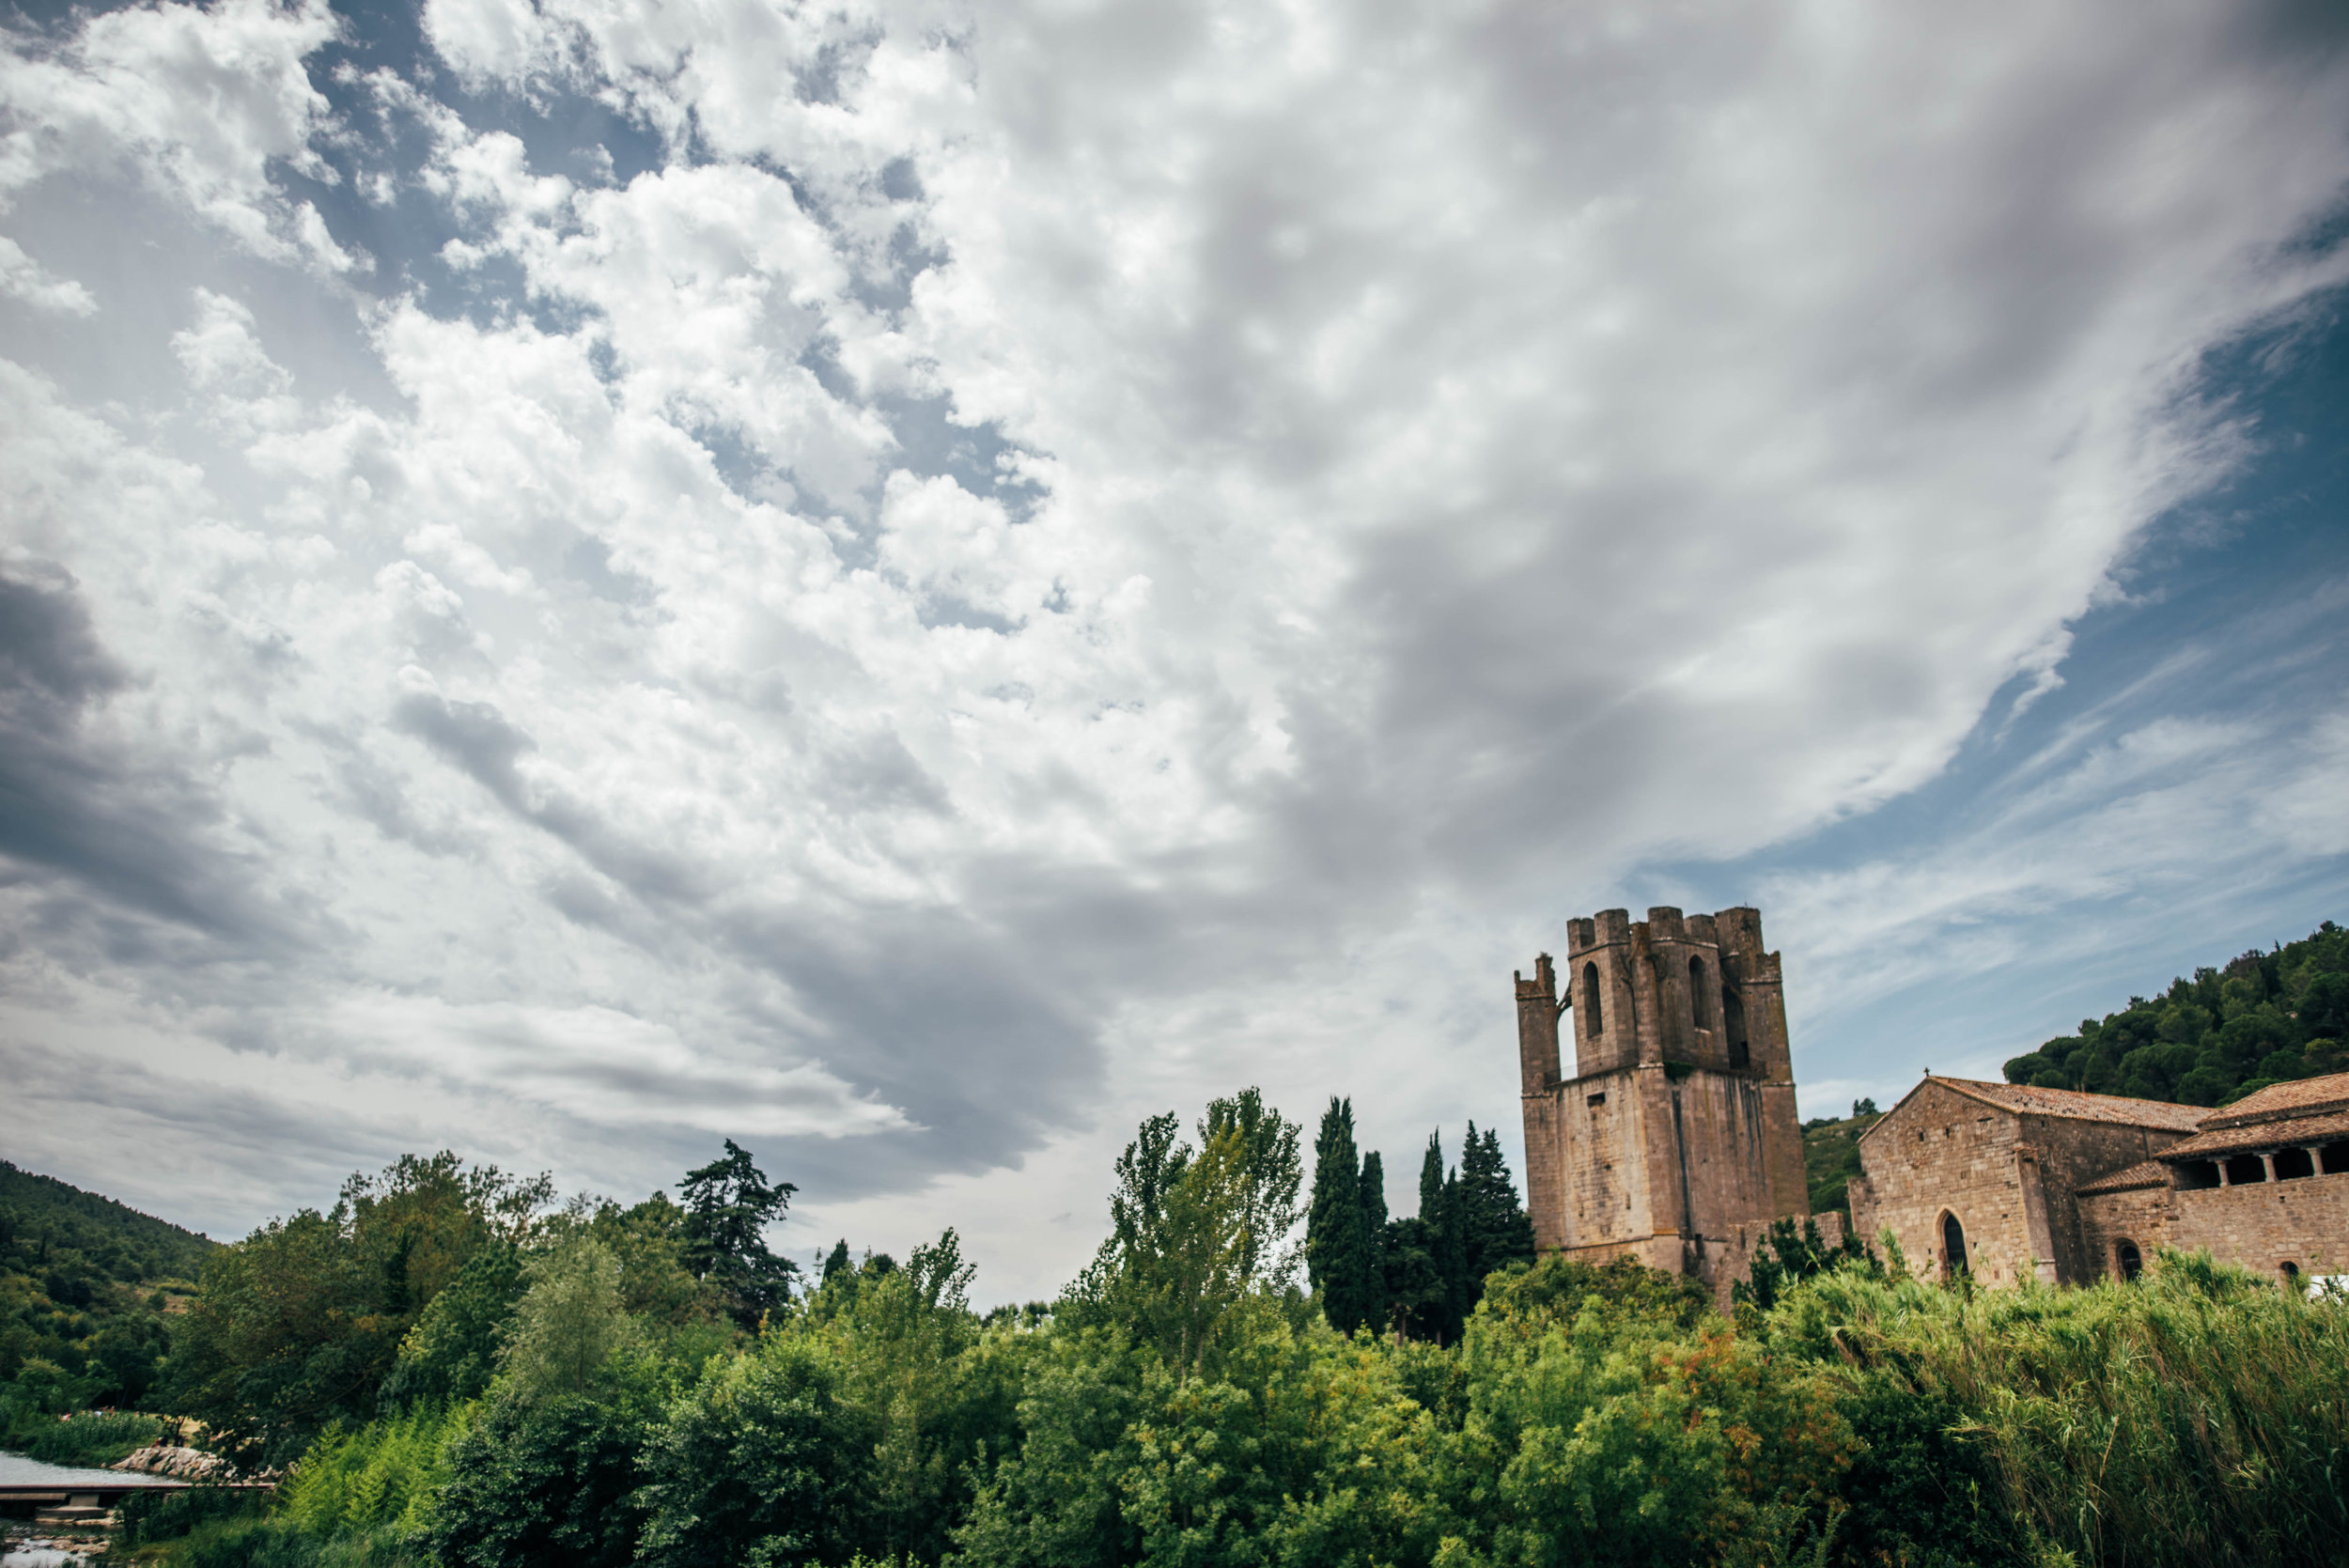 Church on river bank in Lagrasse France Essex UK Documentary Photographer